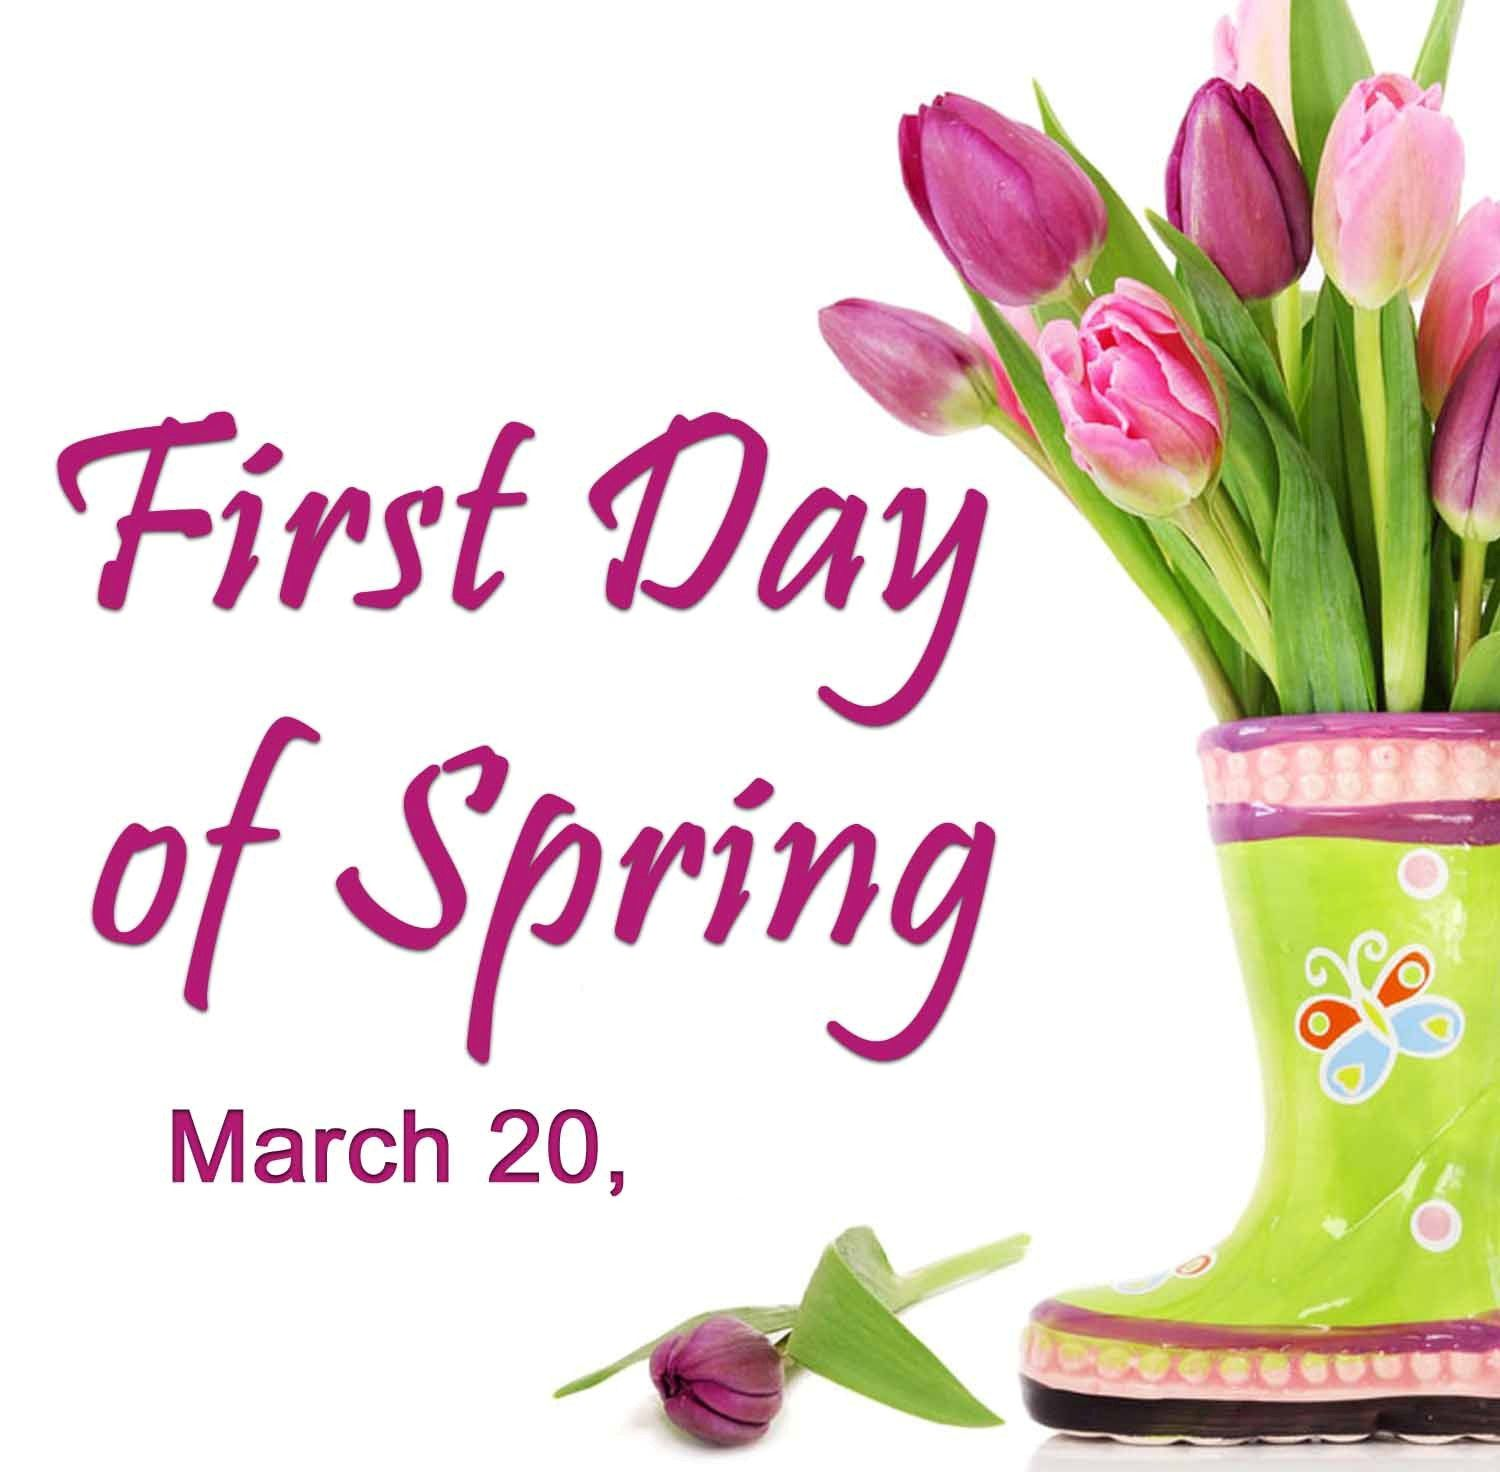 First day of spring and jean 39 s birthday happy birthday jean for jean spring spring - Happy spring day image quotes ...